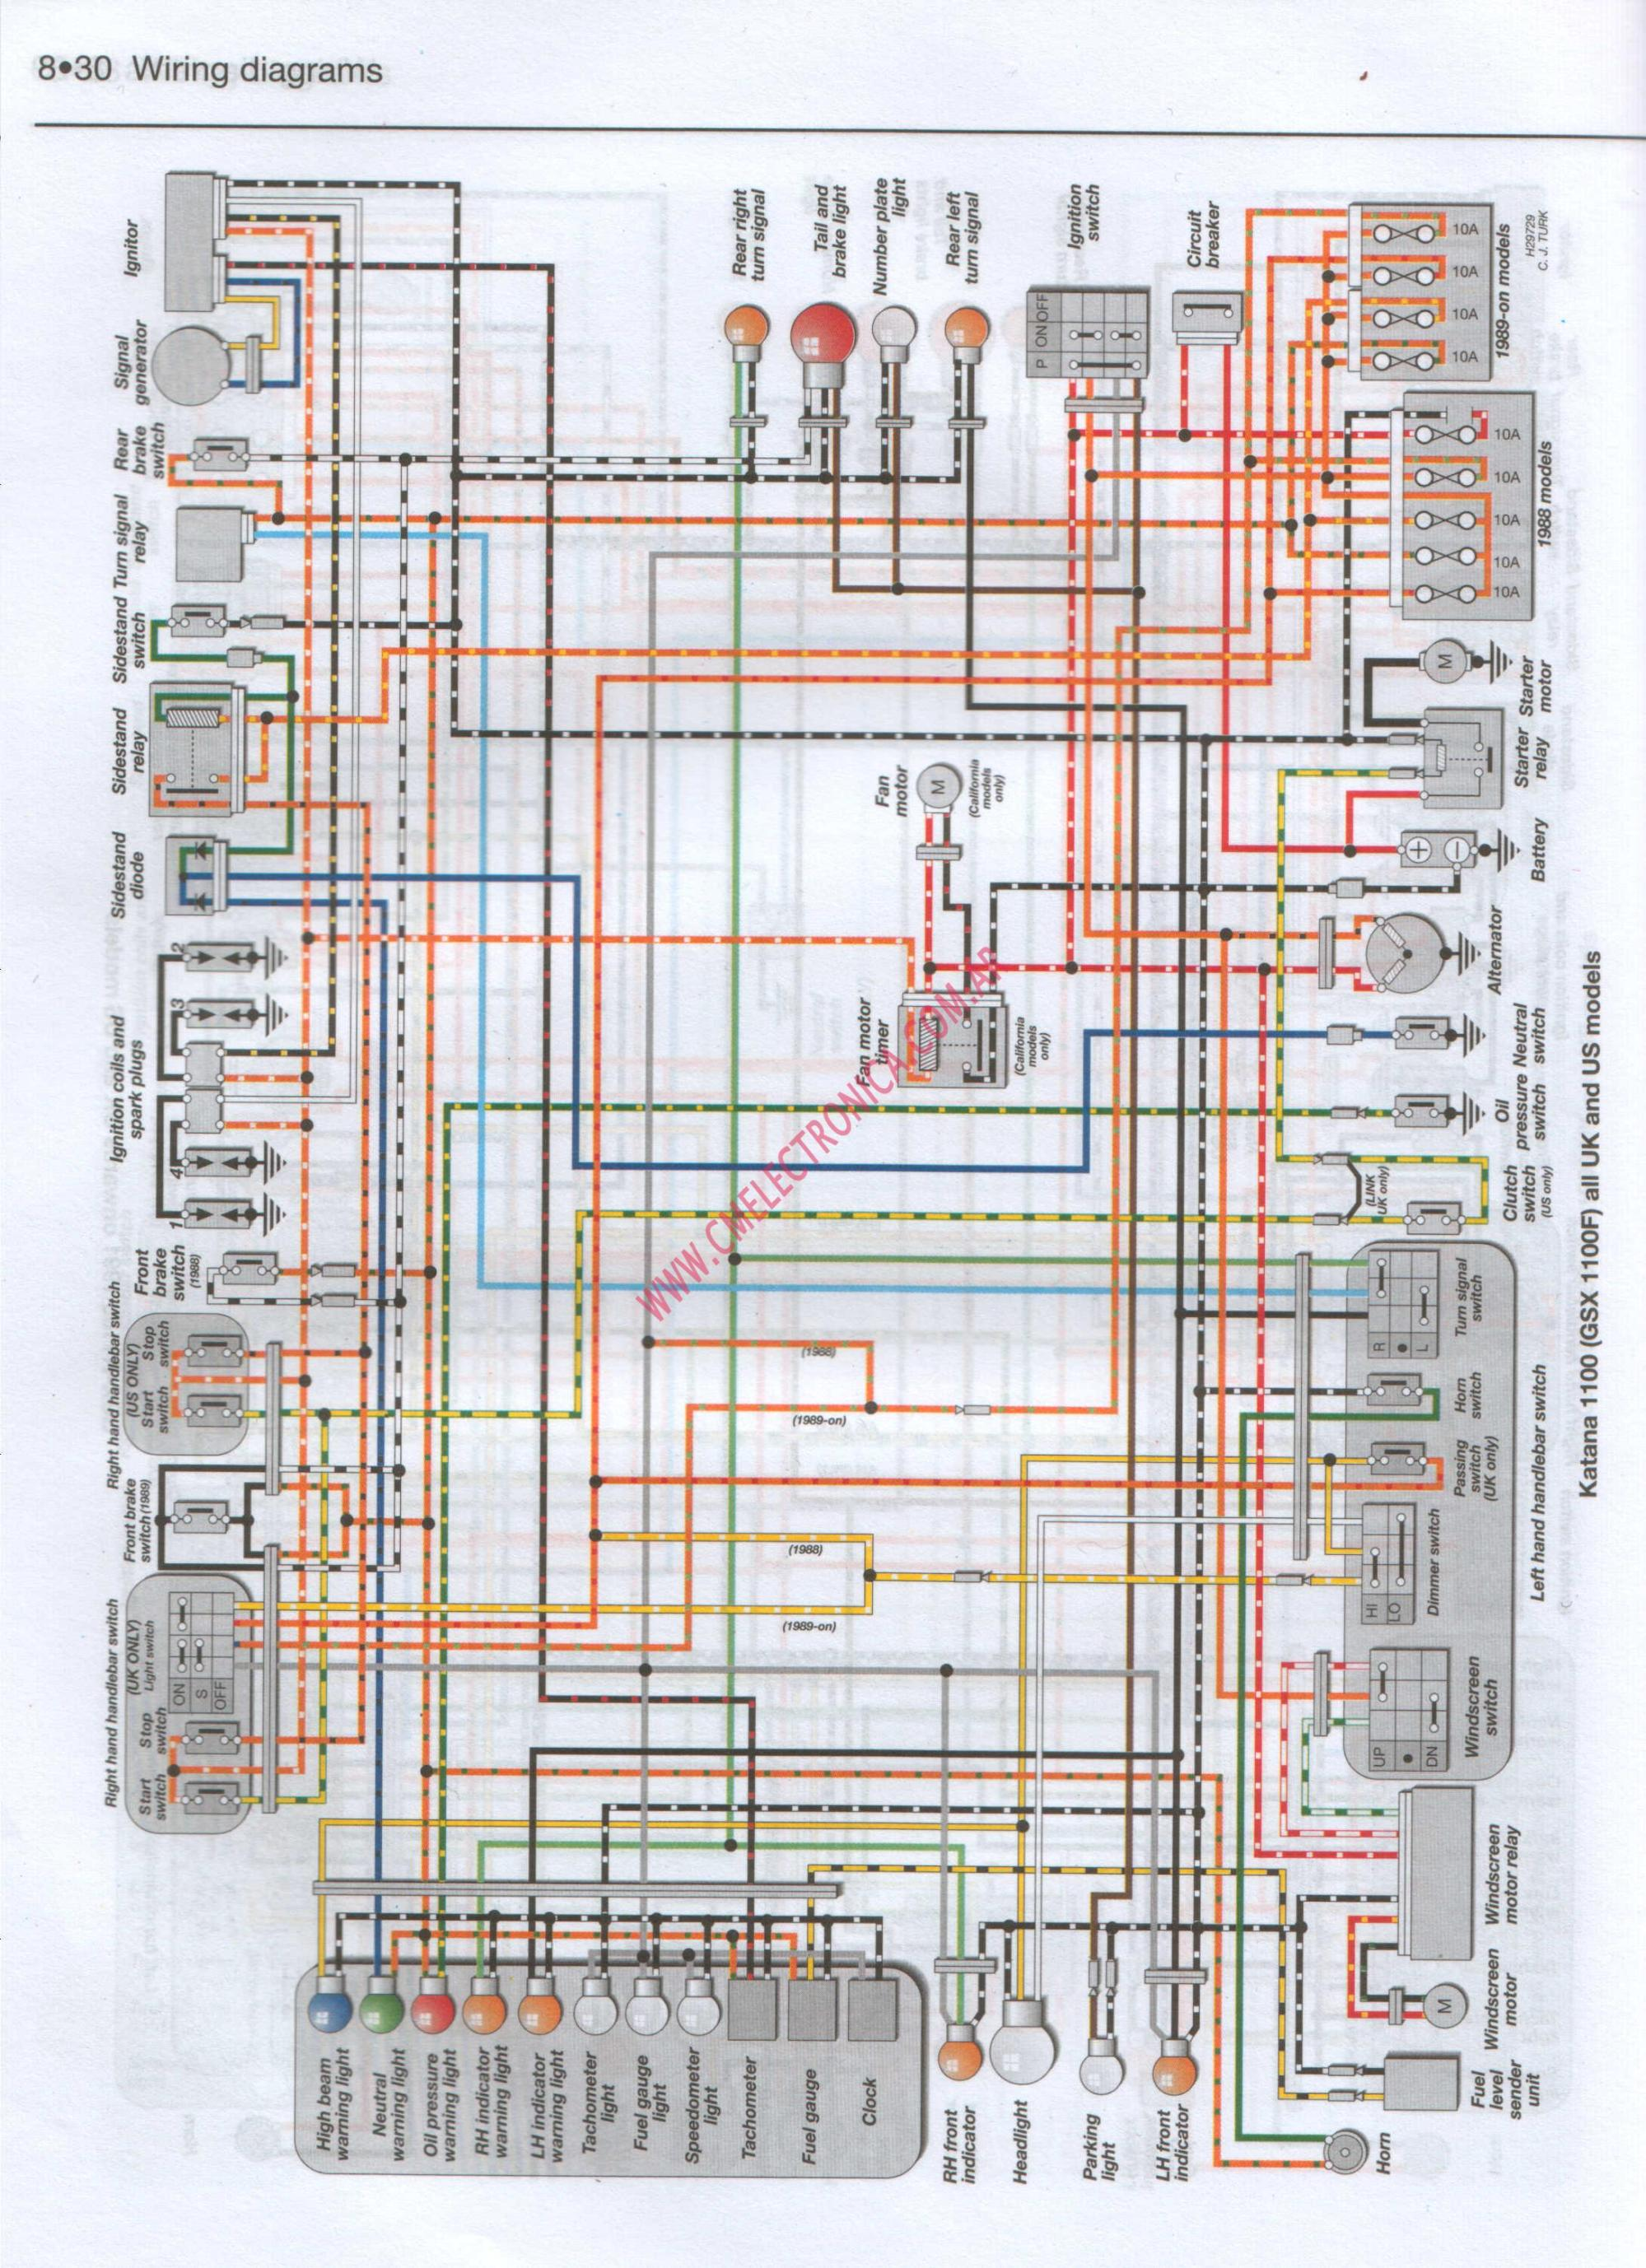 hight resolution of wrg 9424 wiring diagram suzuki bandit 400 1999 suzuki bandit 600 wiring diagram suzuki gsf 600 wiring diagram